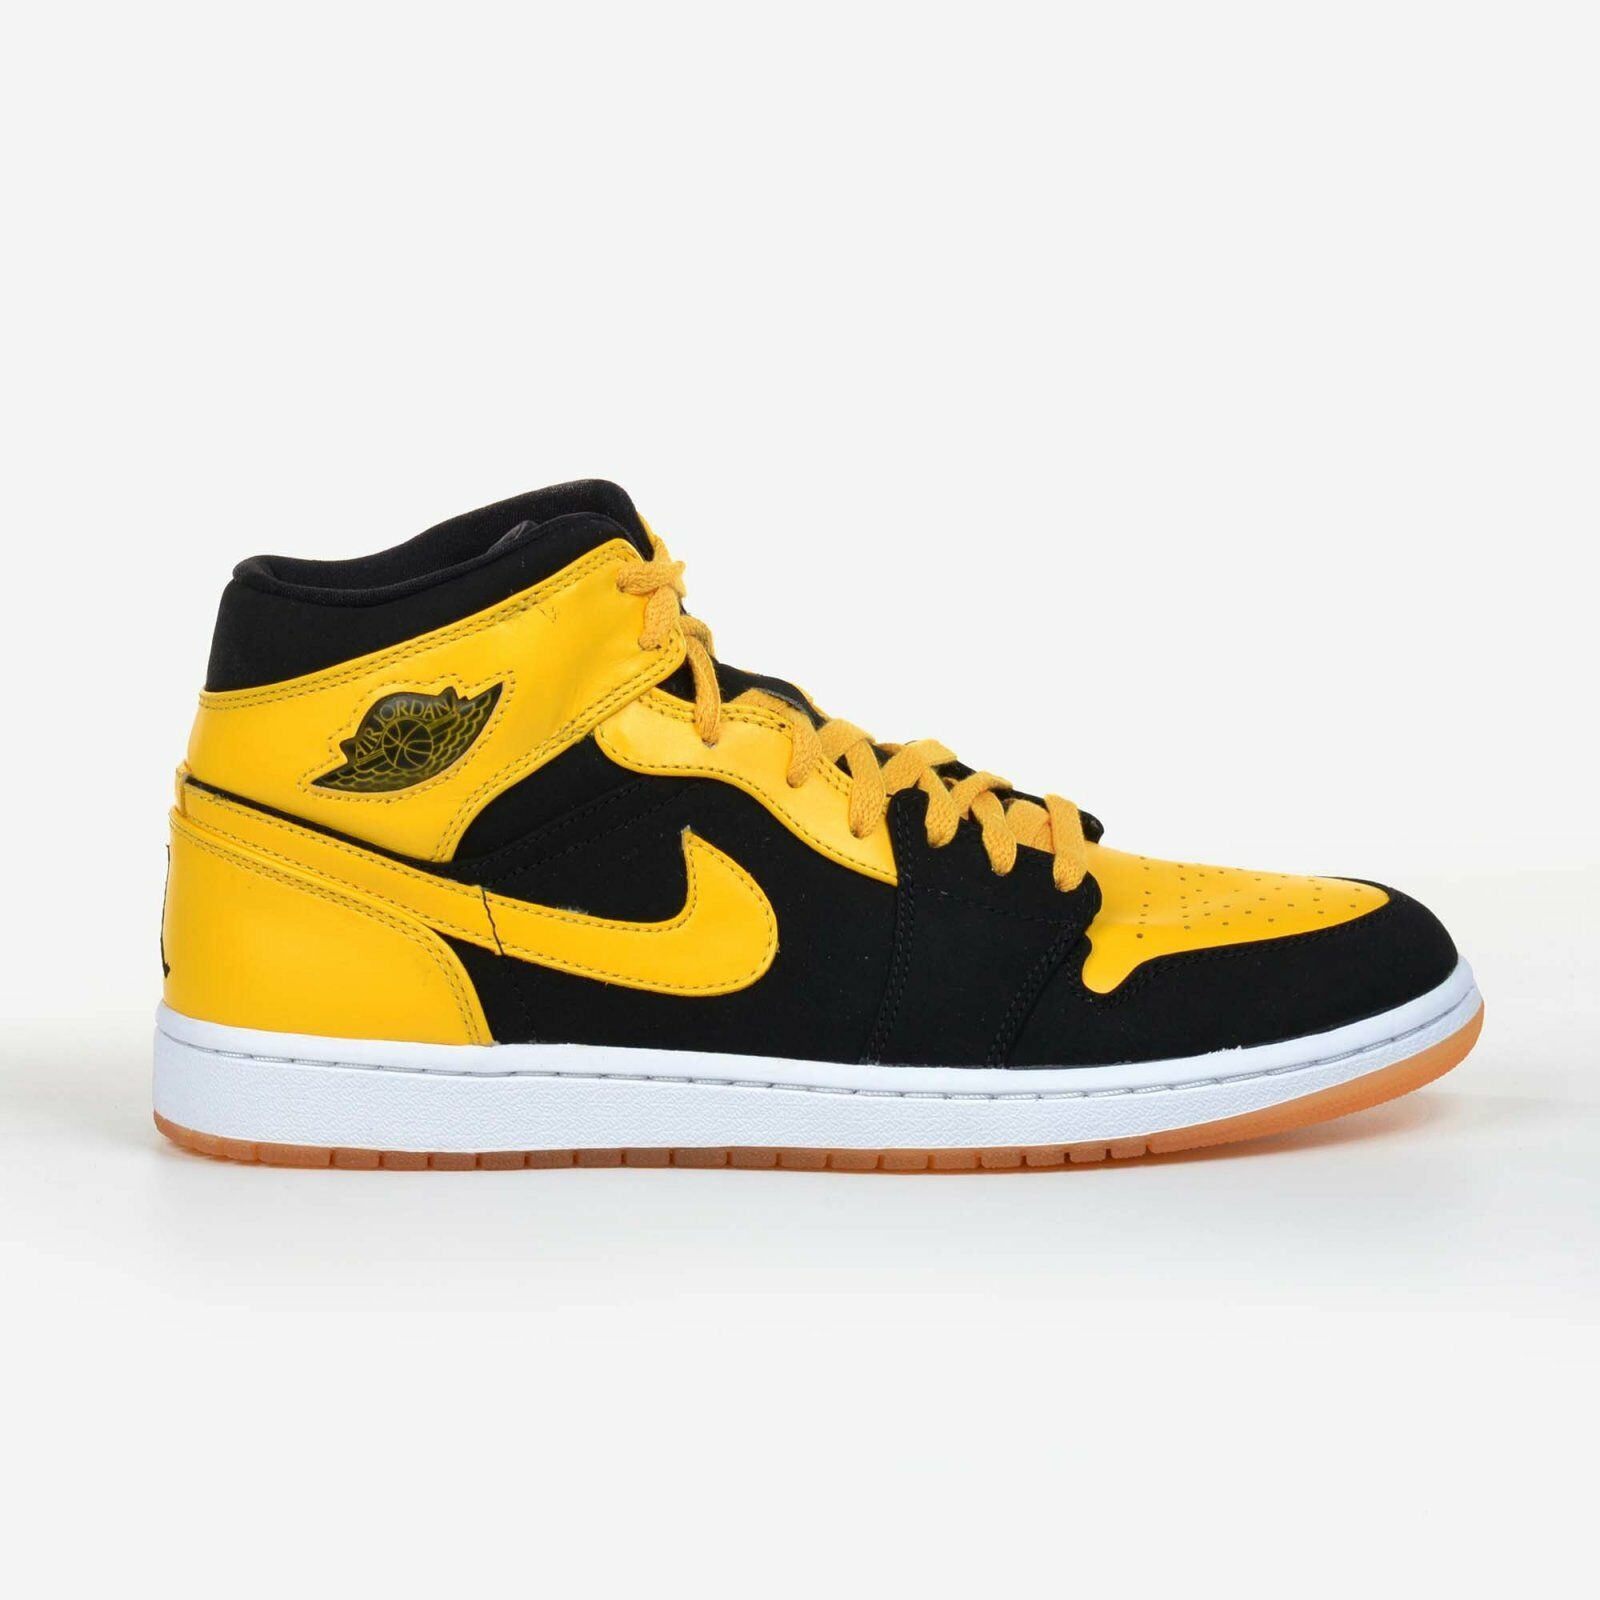 Air Jordan 1 Retro Black Maize White Size 12 New Love 2018 BMP 136058-072